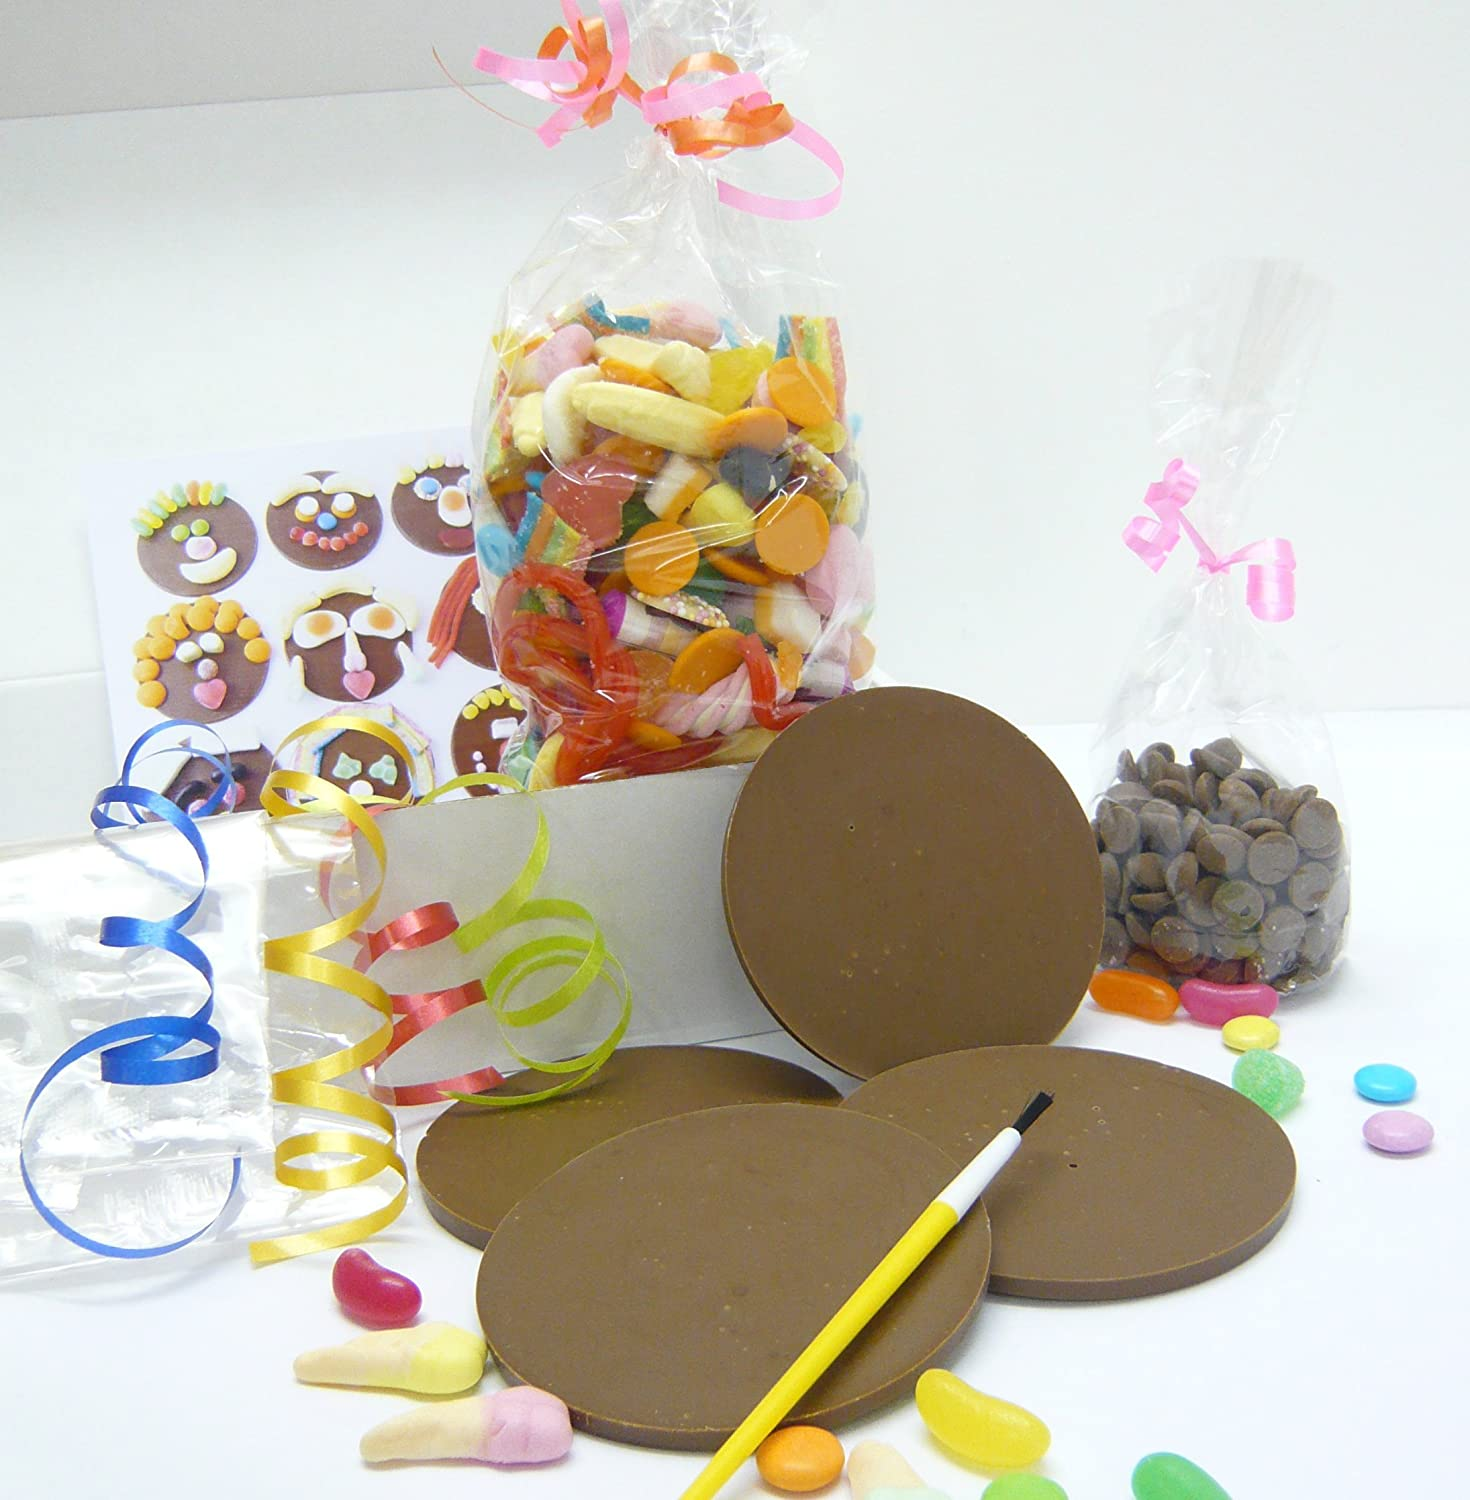 Funny Faces Kit Chocolate And Sweets Kit Make Your Own